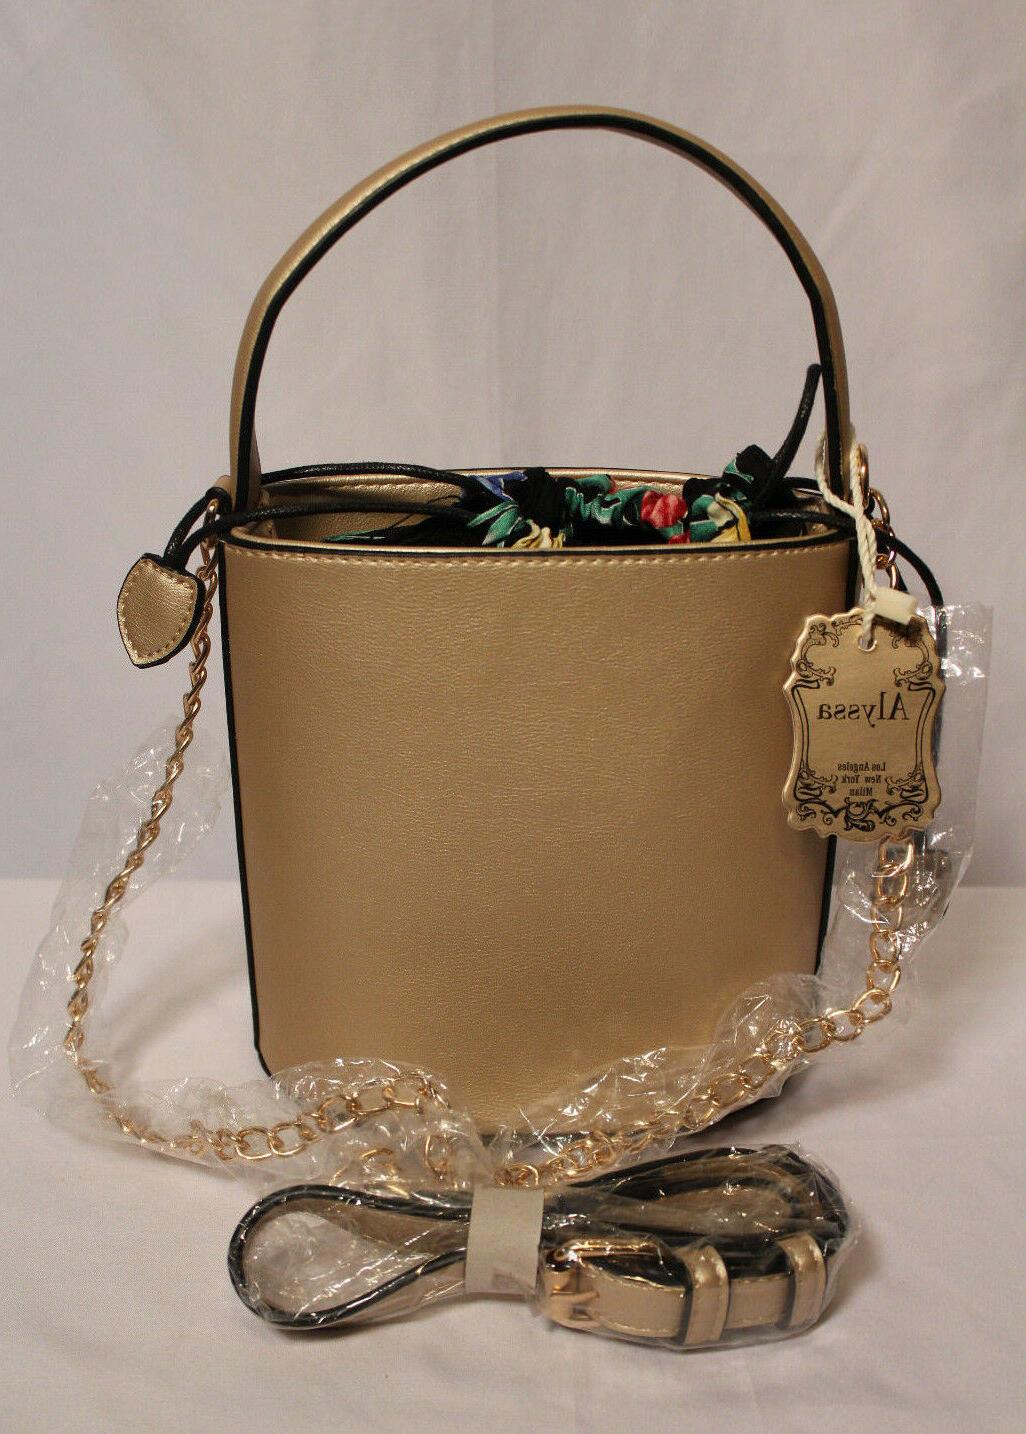 Alyssa NWT Gold Bucket/Crossbody Bag Vegan and Lead Safe Bag